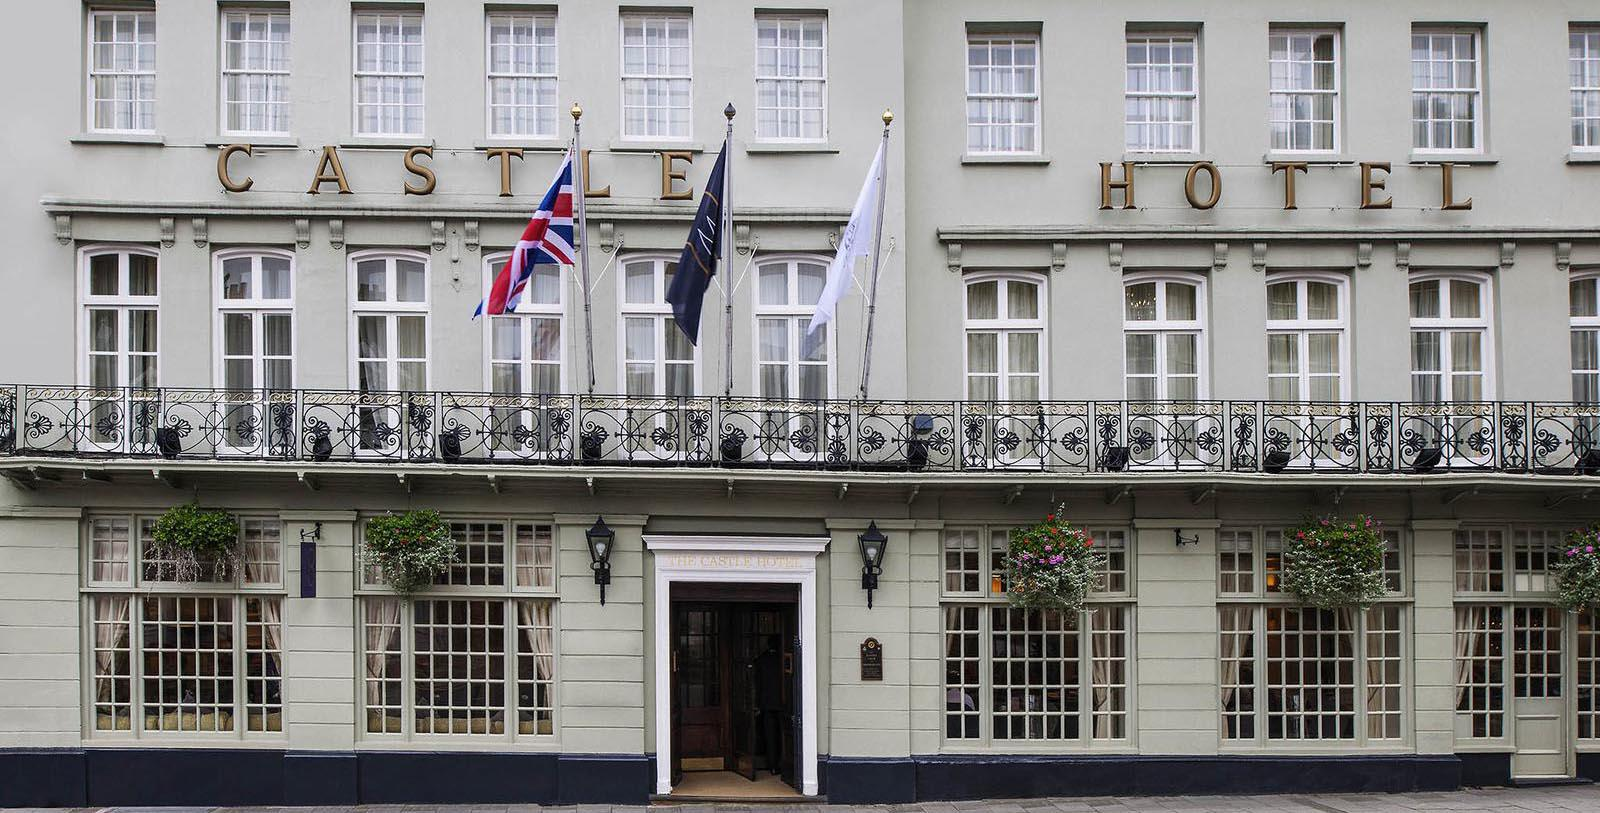 Castle Hotel Windsor